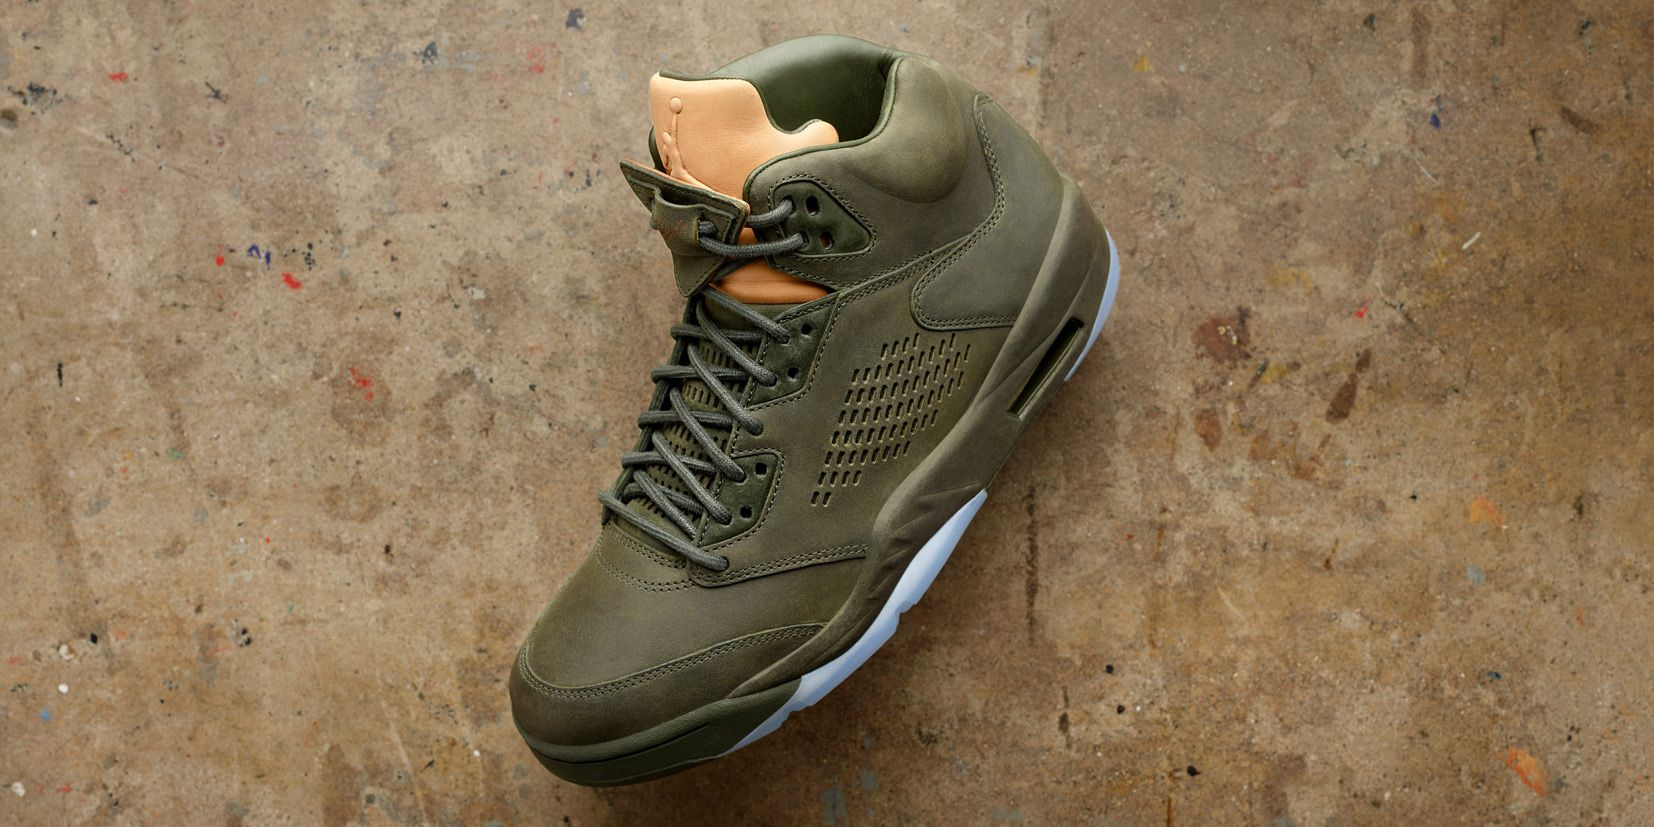 3c157f06e4c coupon for jordan brand completes its take flight trio with all leather  jordan 5s. youre